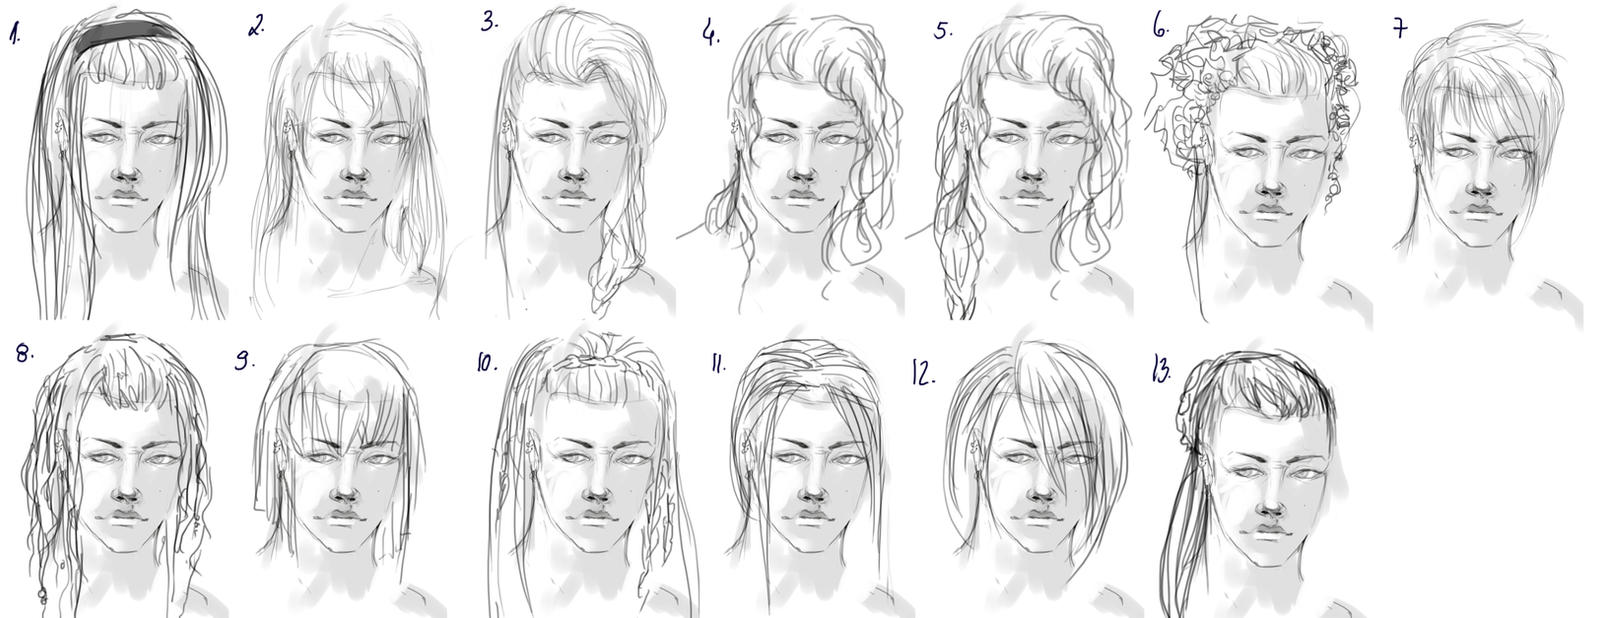 hairstyle sketch by fayerin on deviantart